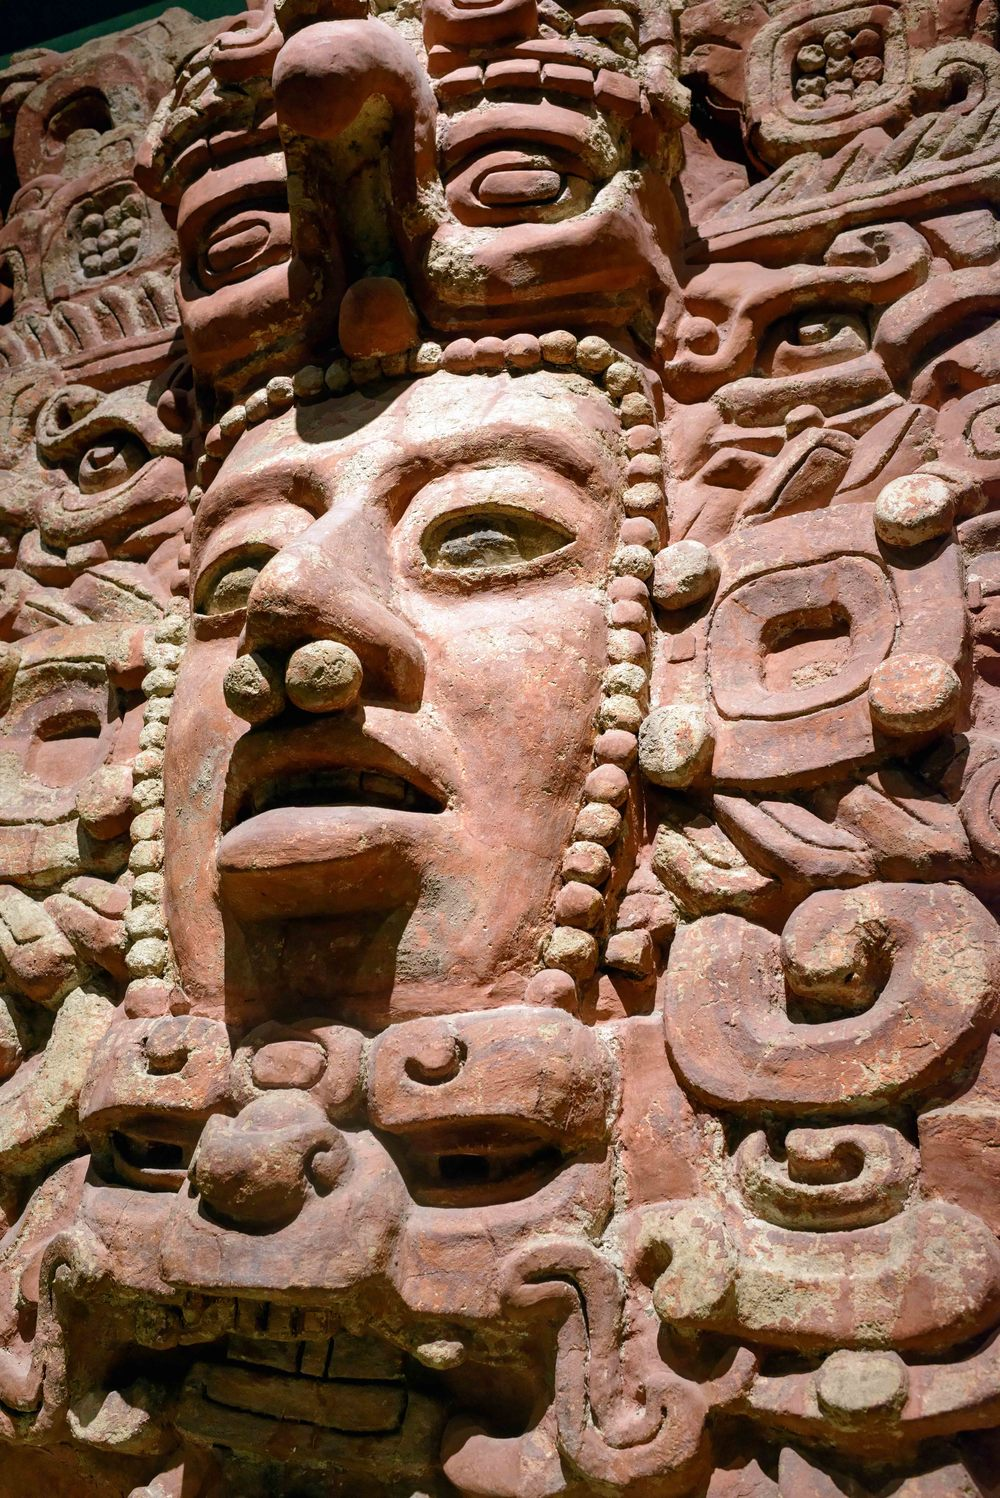 Stucco frieze (fragment), Placeres, Campeche.